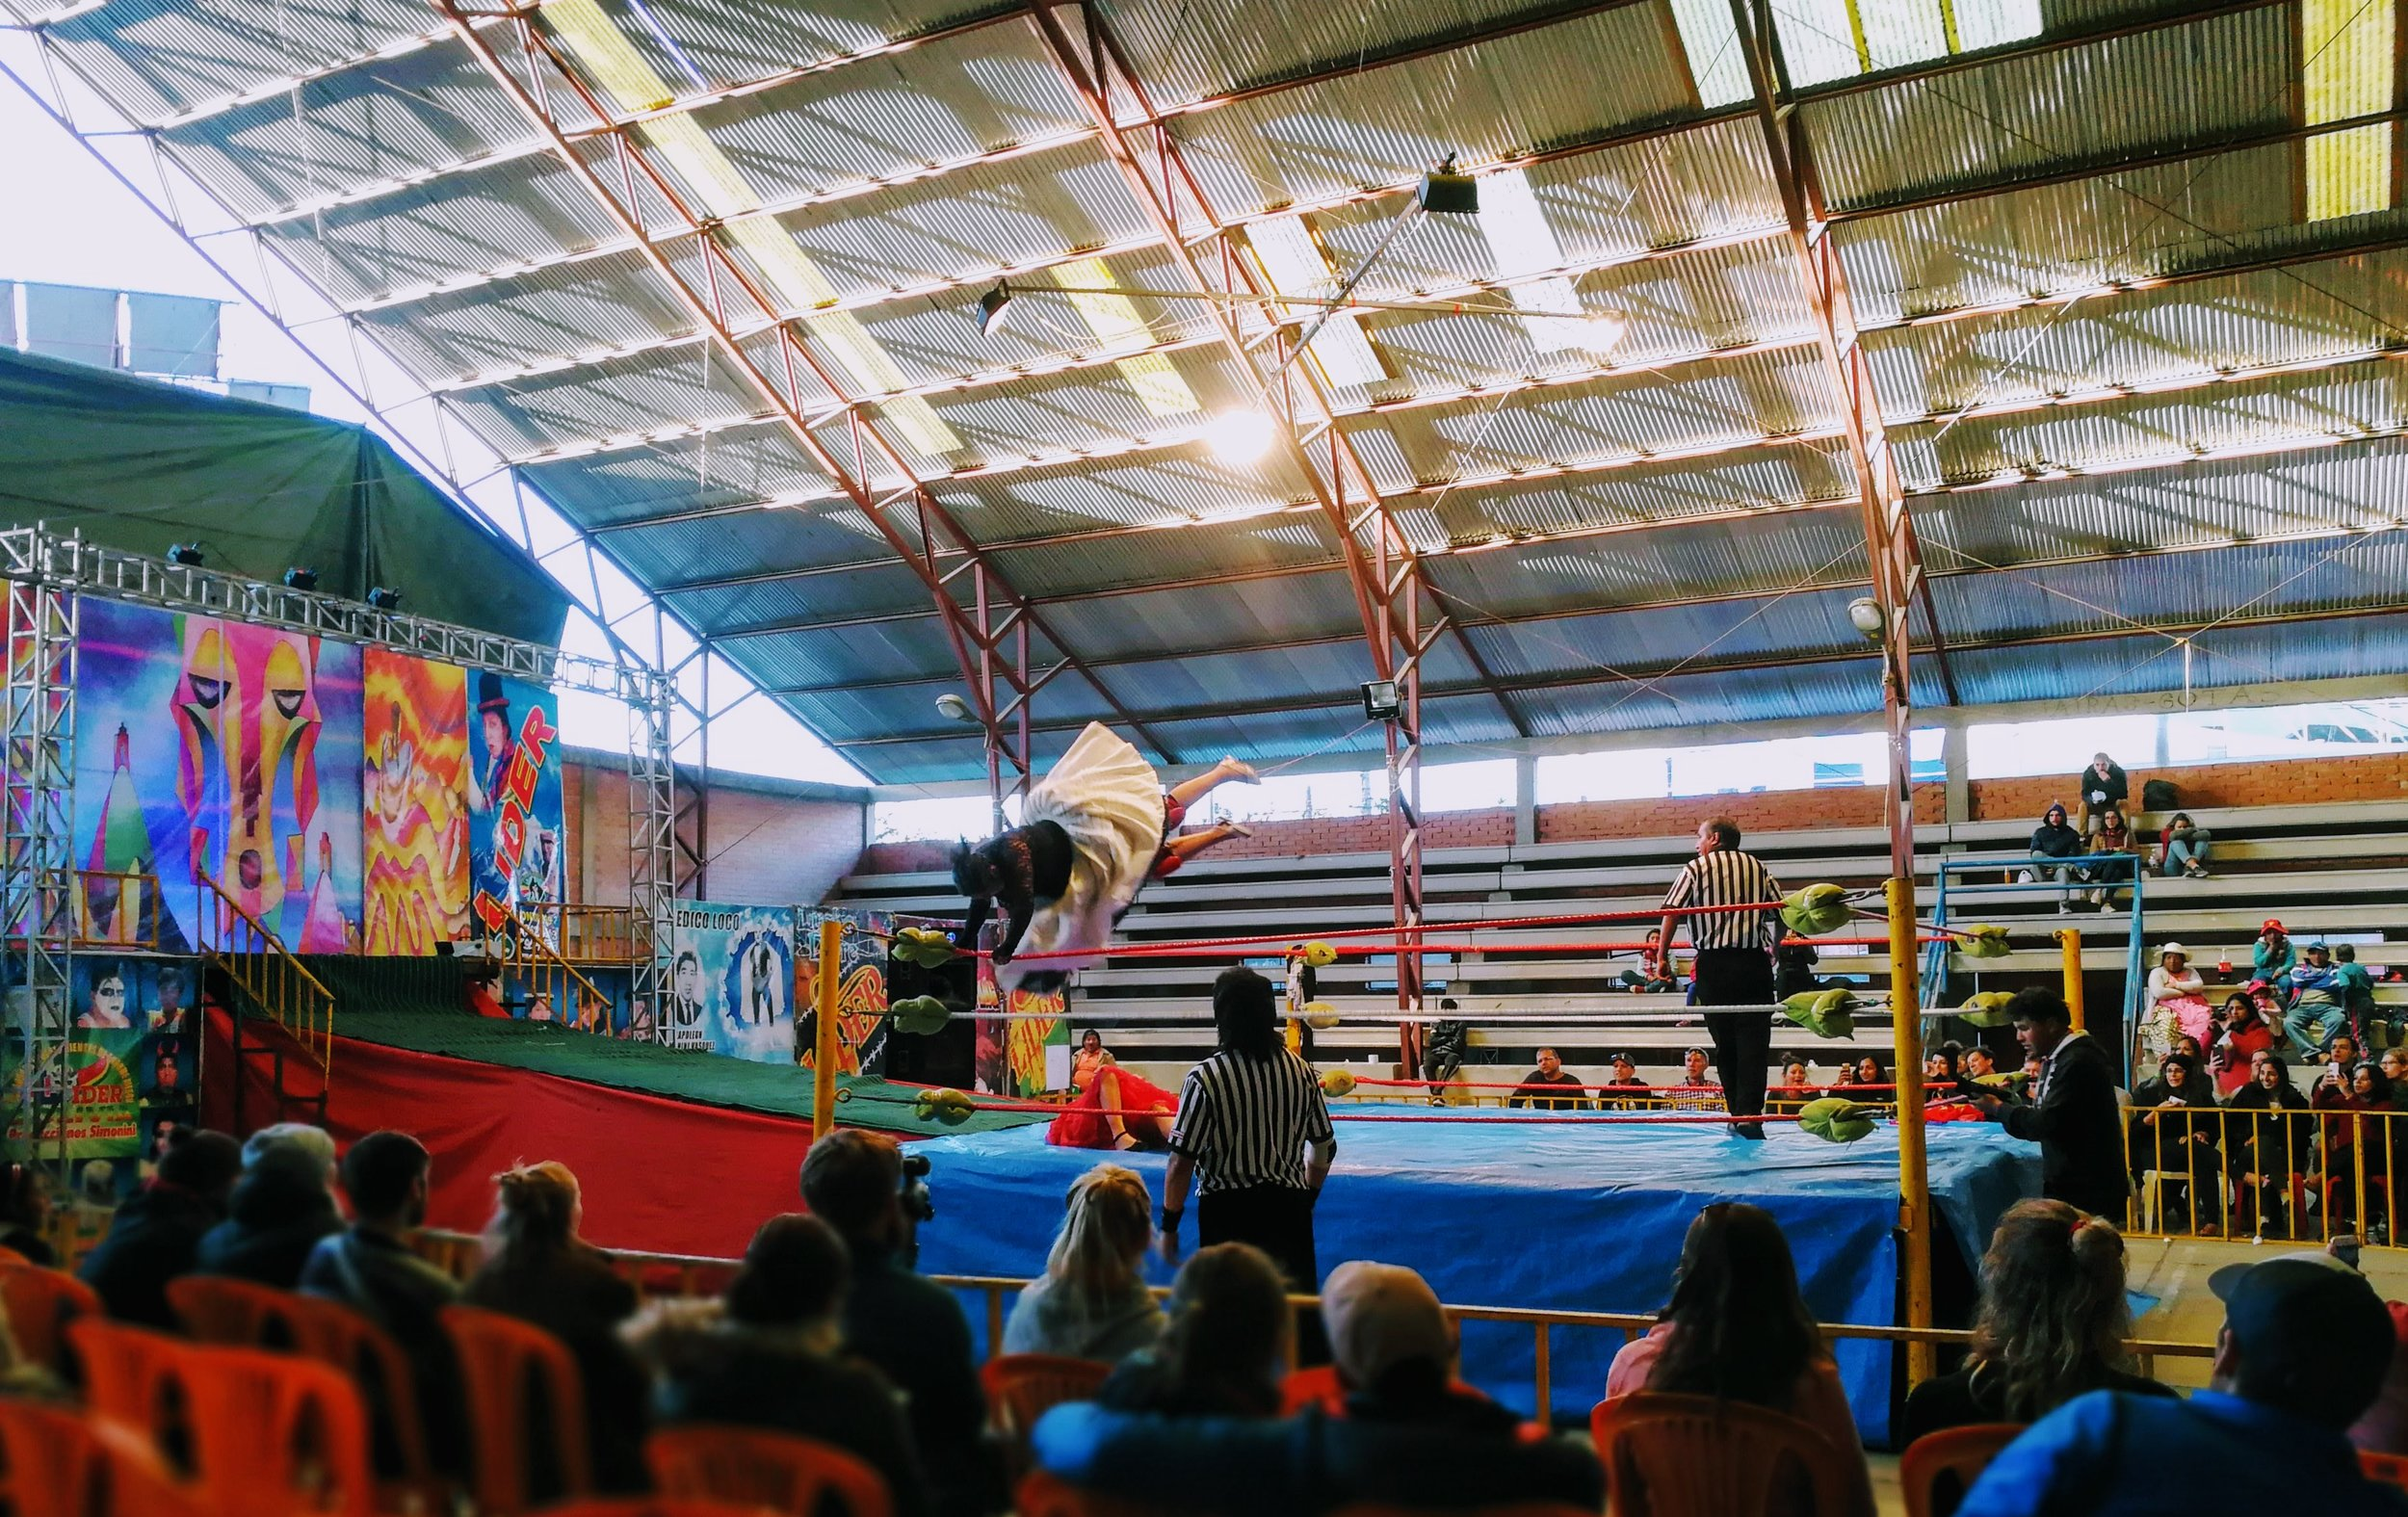 By the end of the show, wrestlers take the battle to the floor while the audience ditches their seats to surround the fighters, throwing popcorn, soda, and water at the opponent they want to lose.